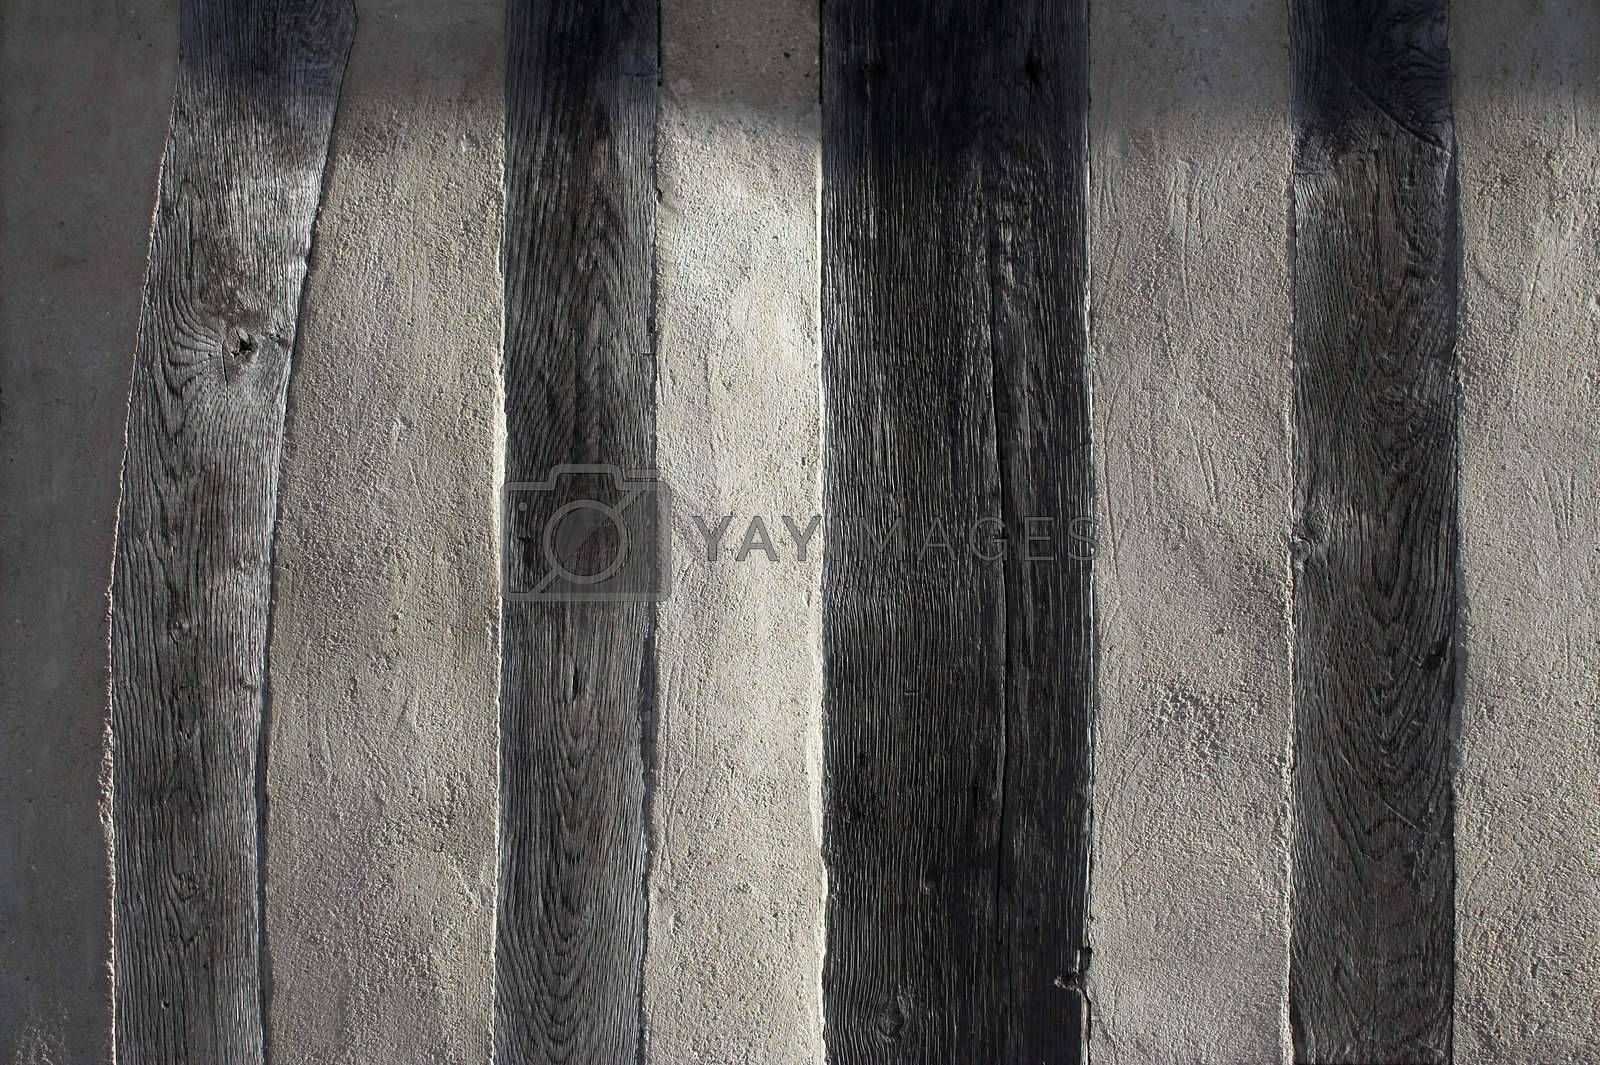 Texture - half-timbered house wall by MikLav